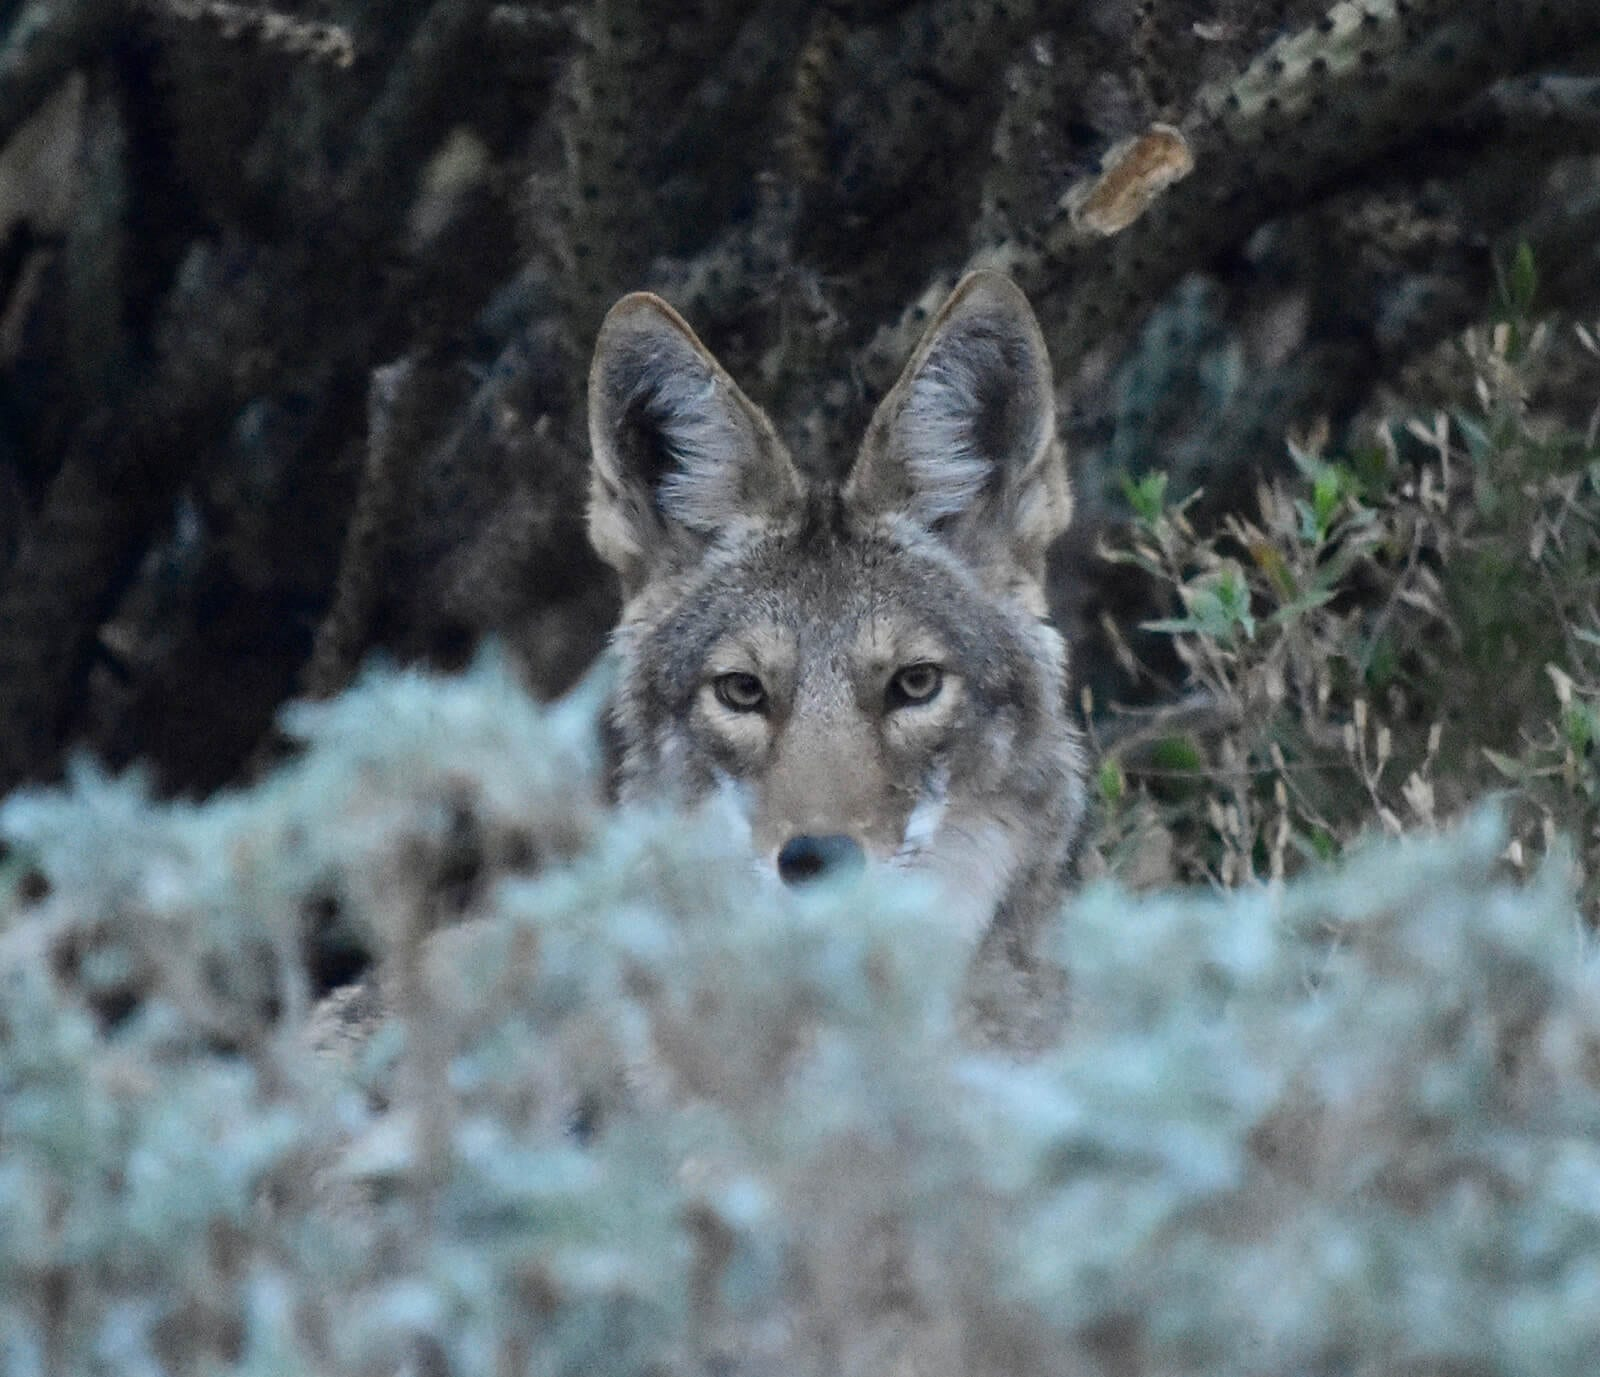 Coyote in Karen's front yard